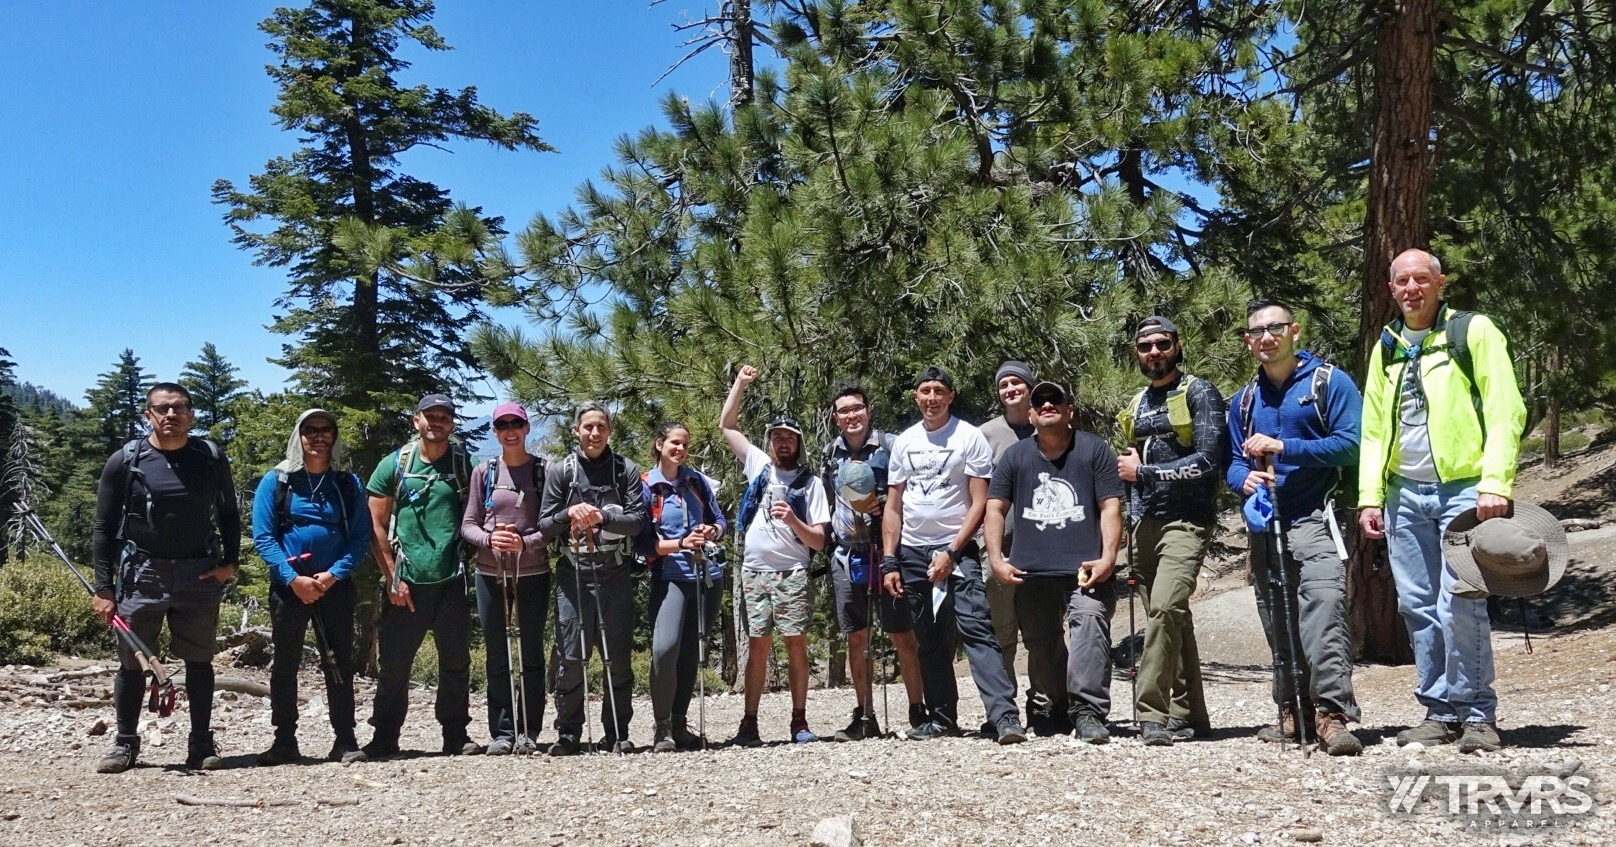 group-photo-icehouse-saddle-Ontario Peak via Falling Rock Canyon - Angeles National Forest - San Gabriel Mountain Range - TRVRS APPAREL - Clothing Brand